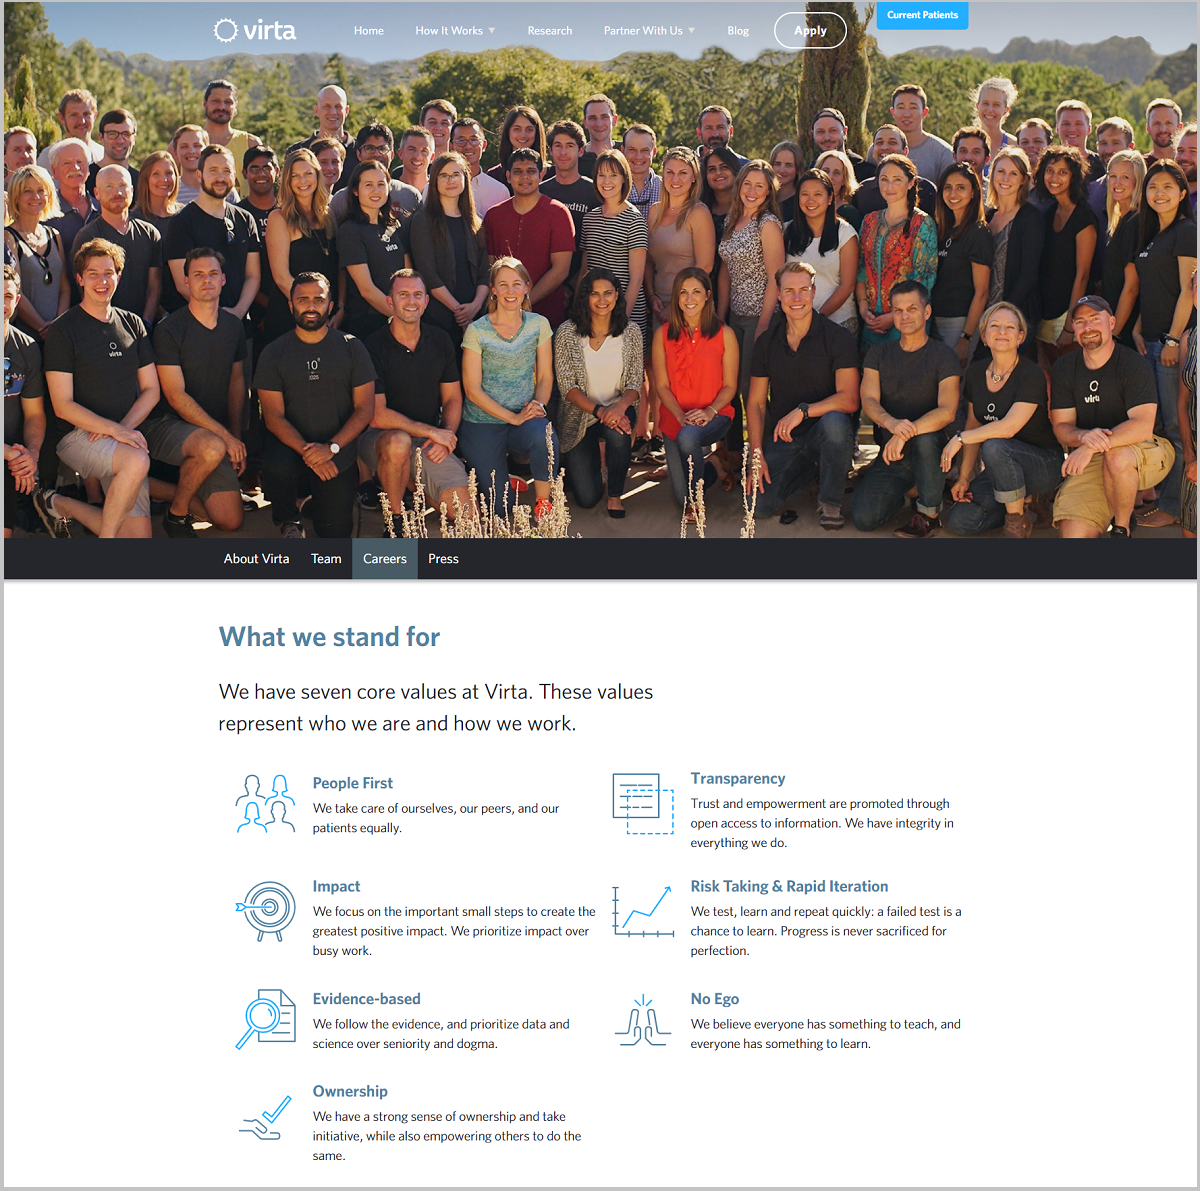 virta health company career page